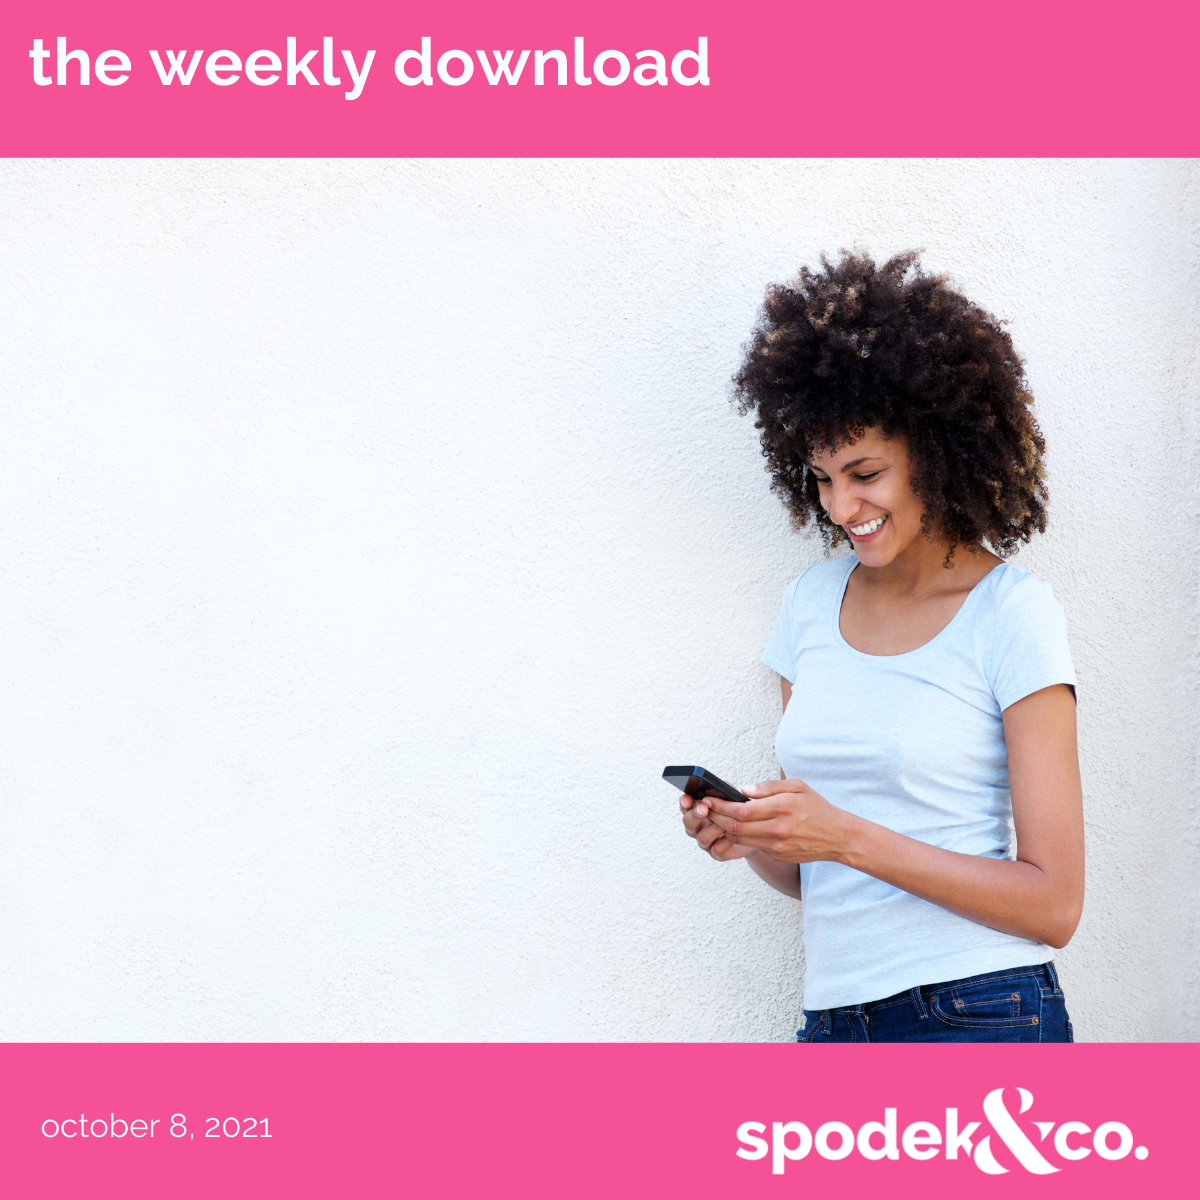 The Weekly Download – October 8, 2021